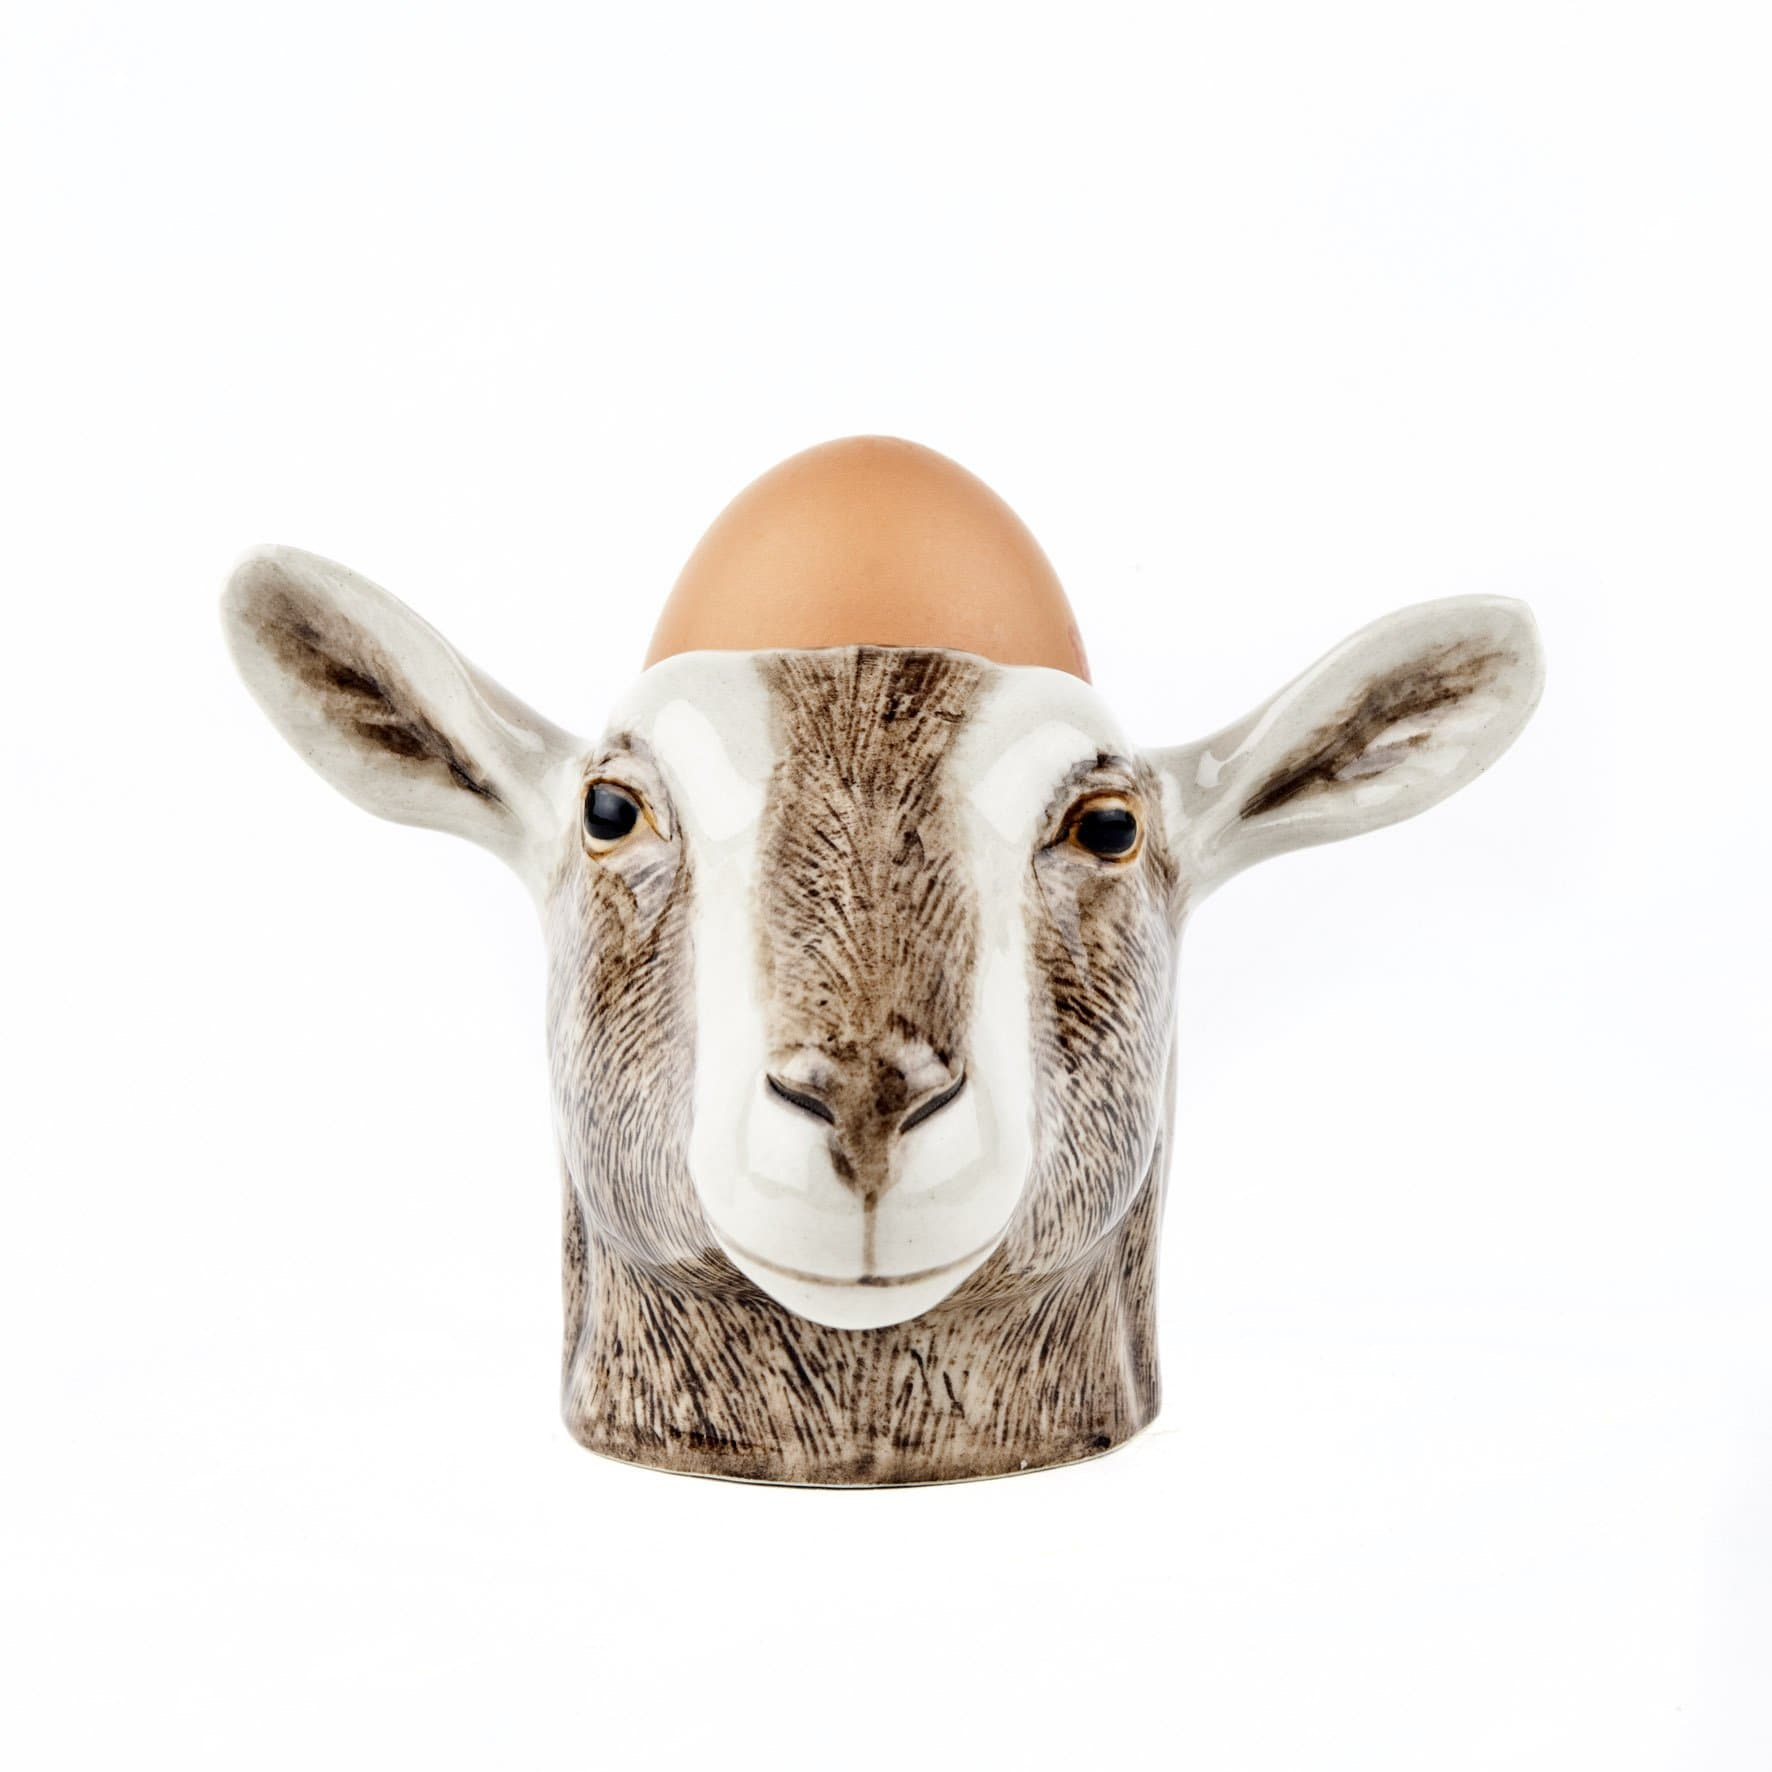 Goat face - egg cup